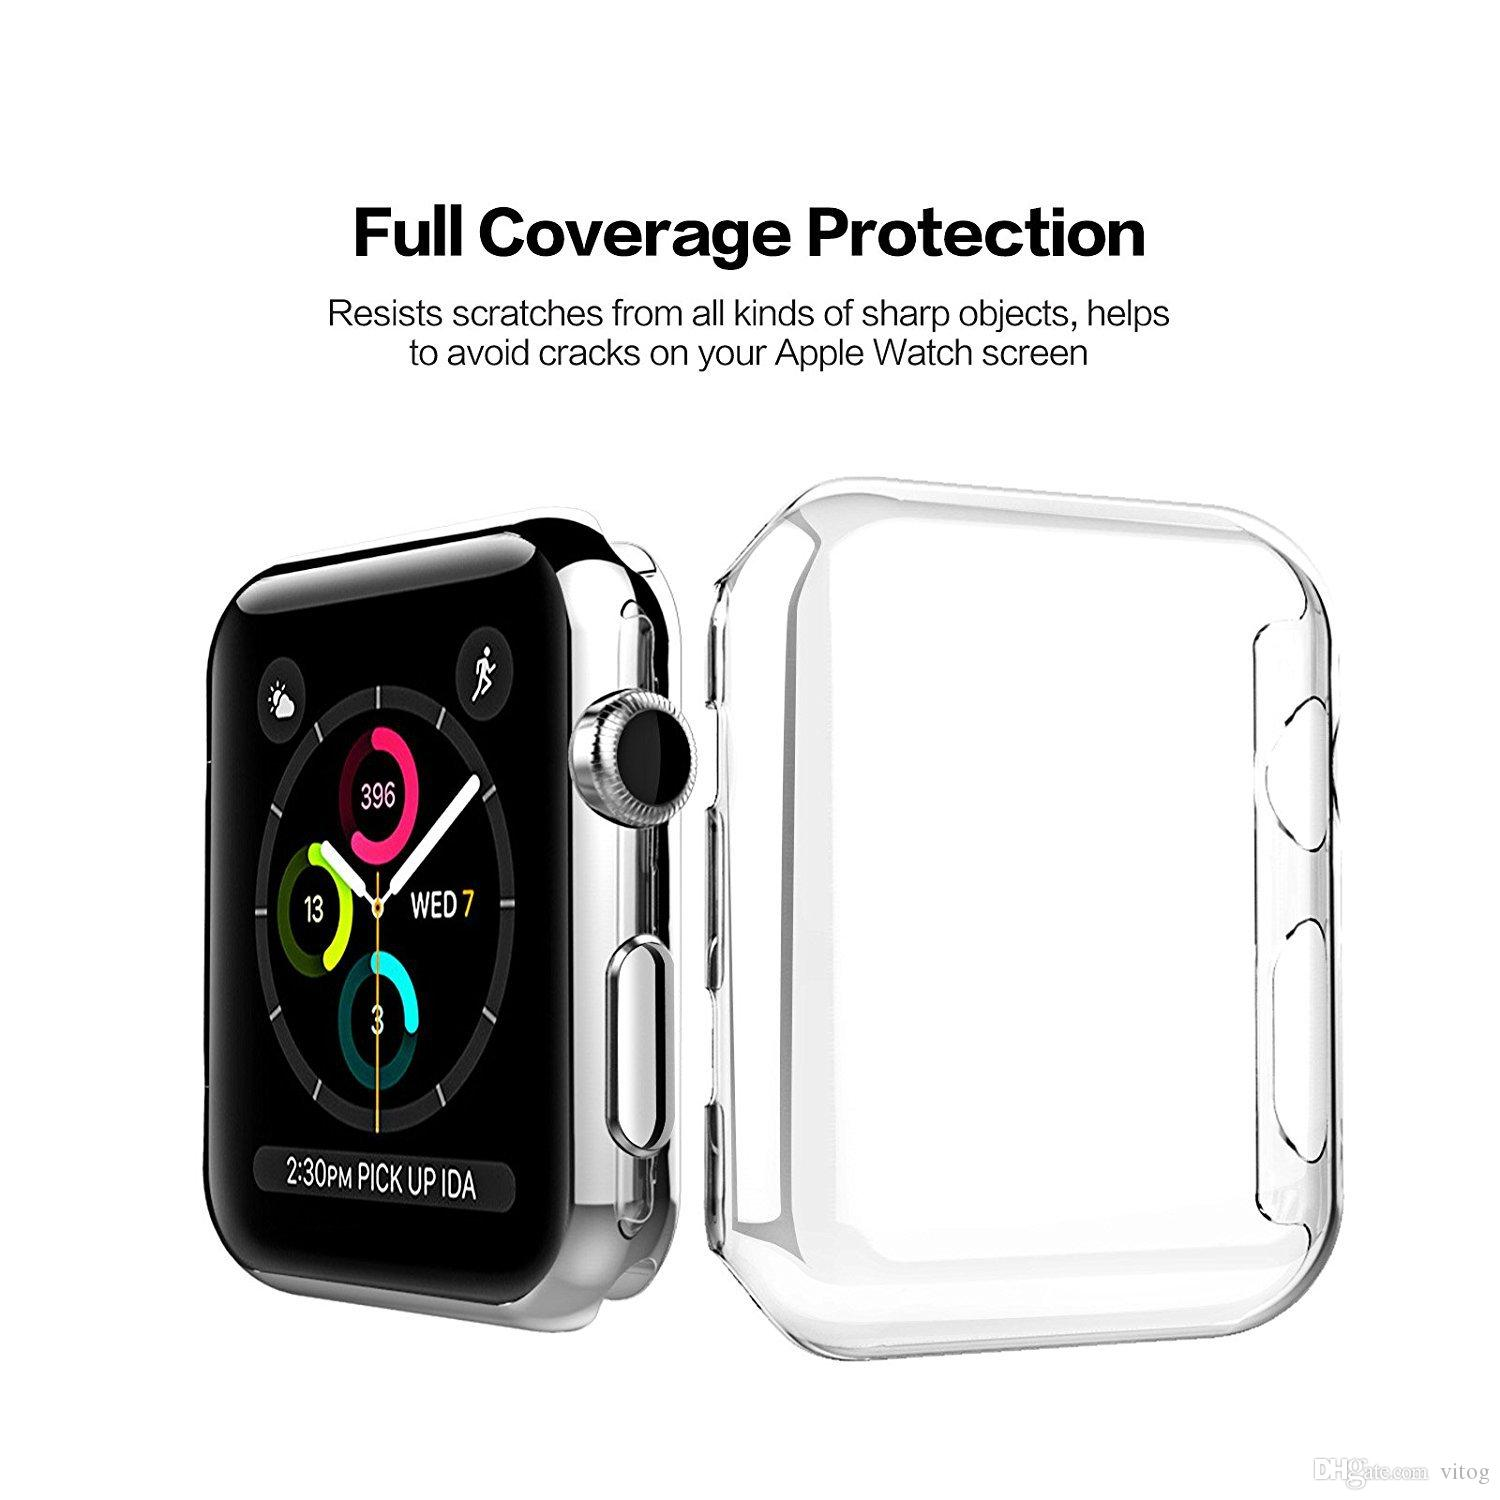 Transparent Frame Case Clear Ultra Thin Hard PC Protective Cover For Apple Watch Series 4 3 2 1 iwatch 38mm 42mm